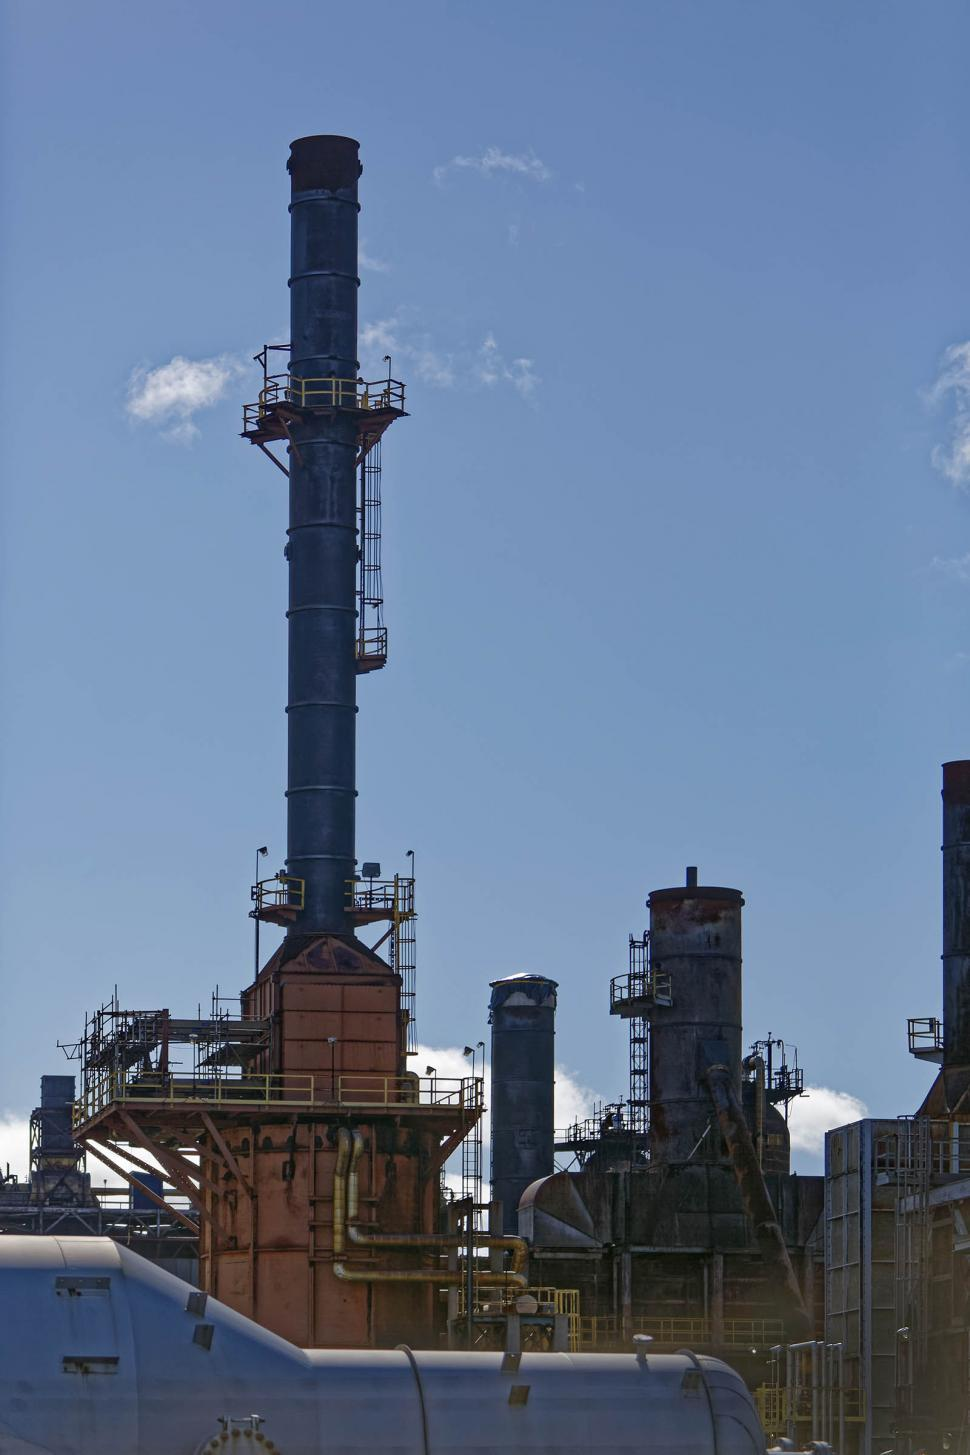 Download Free Stock Photo of Large stack at refinery